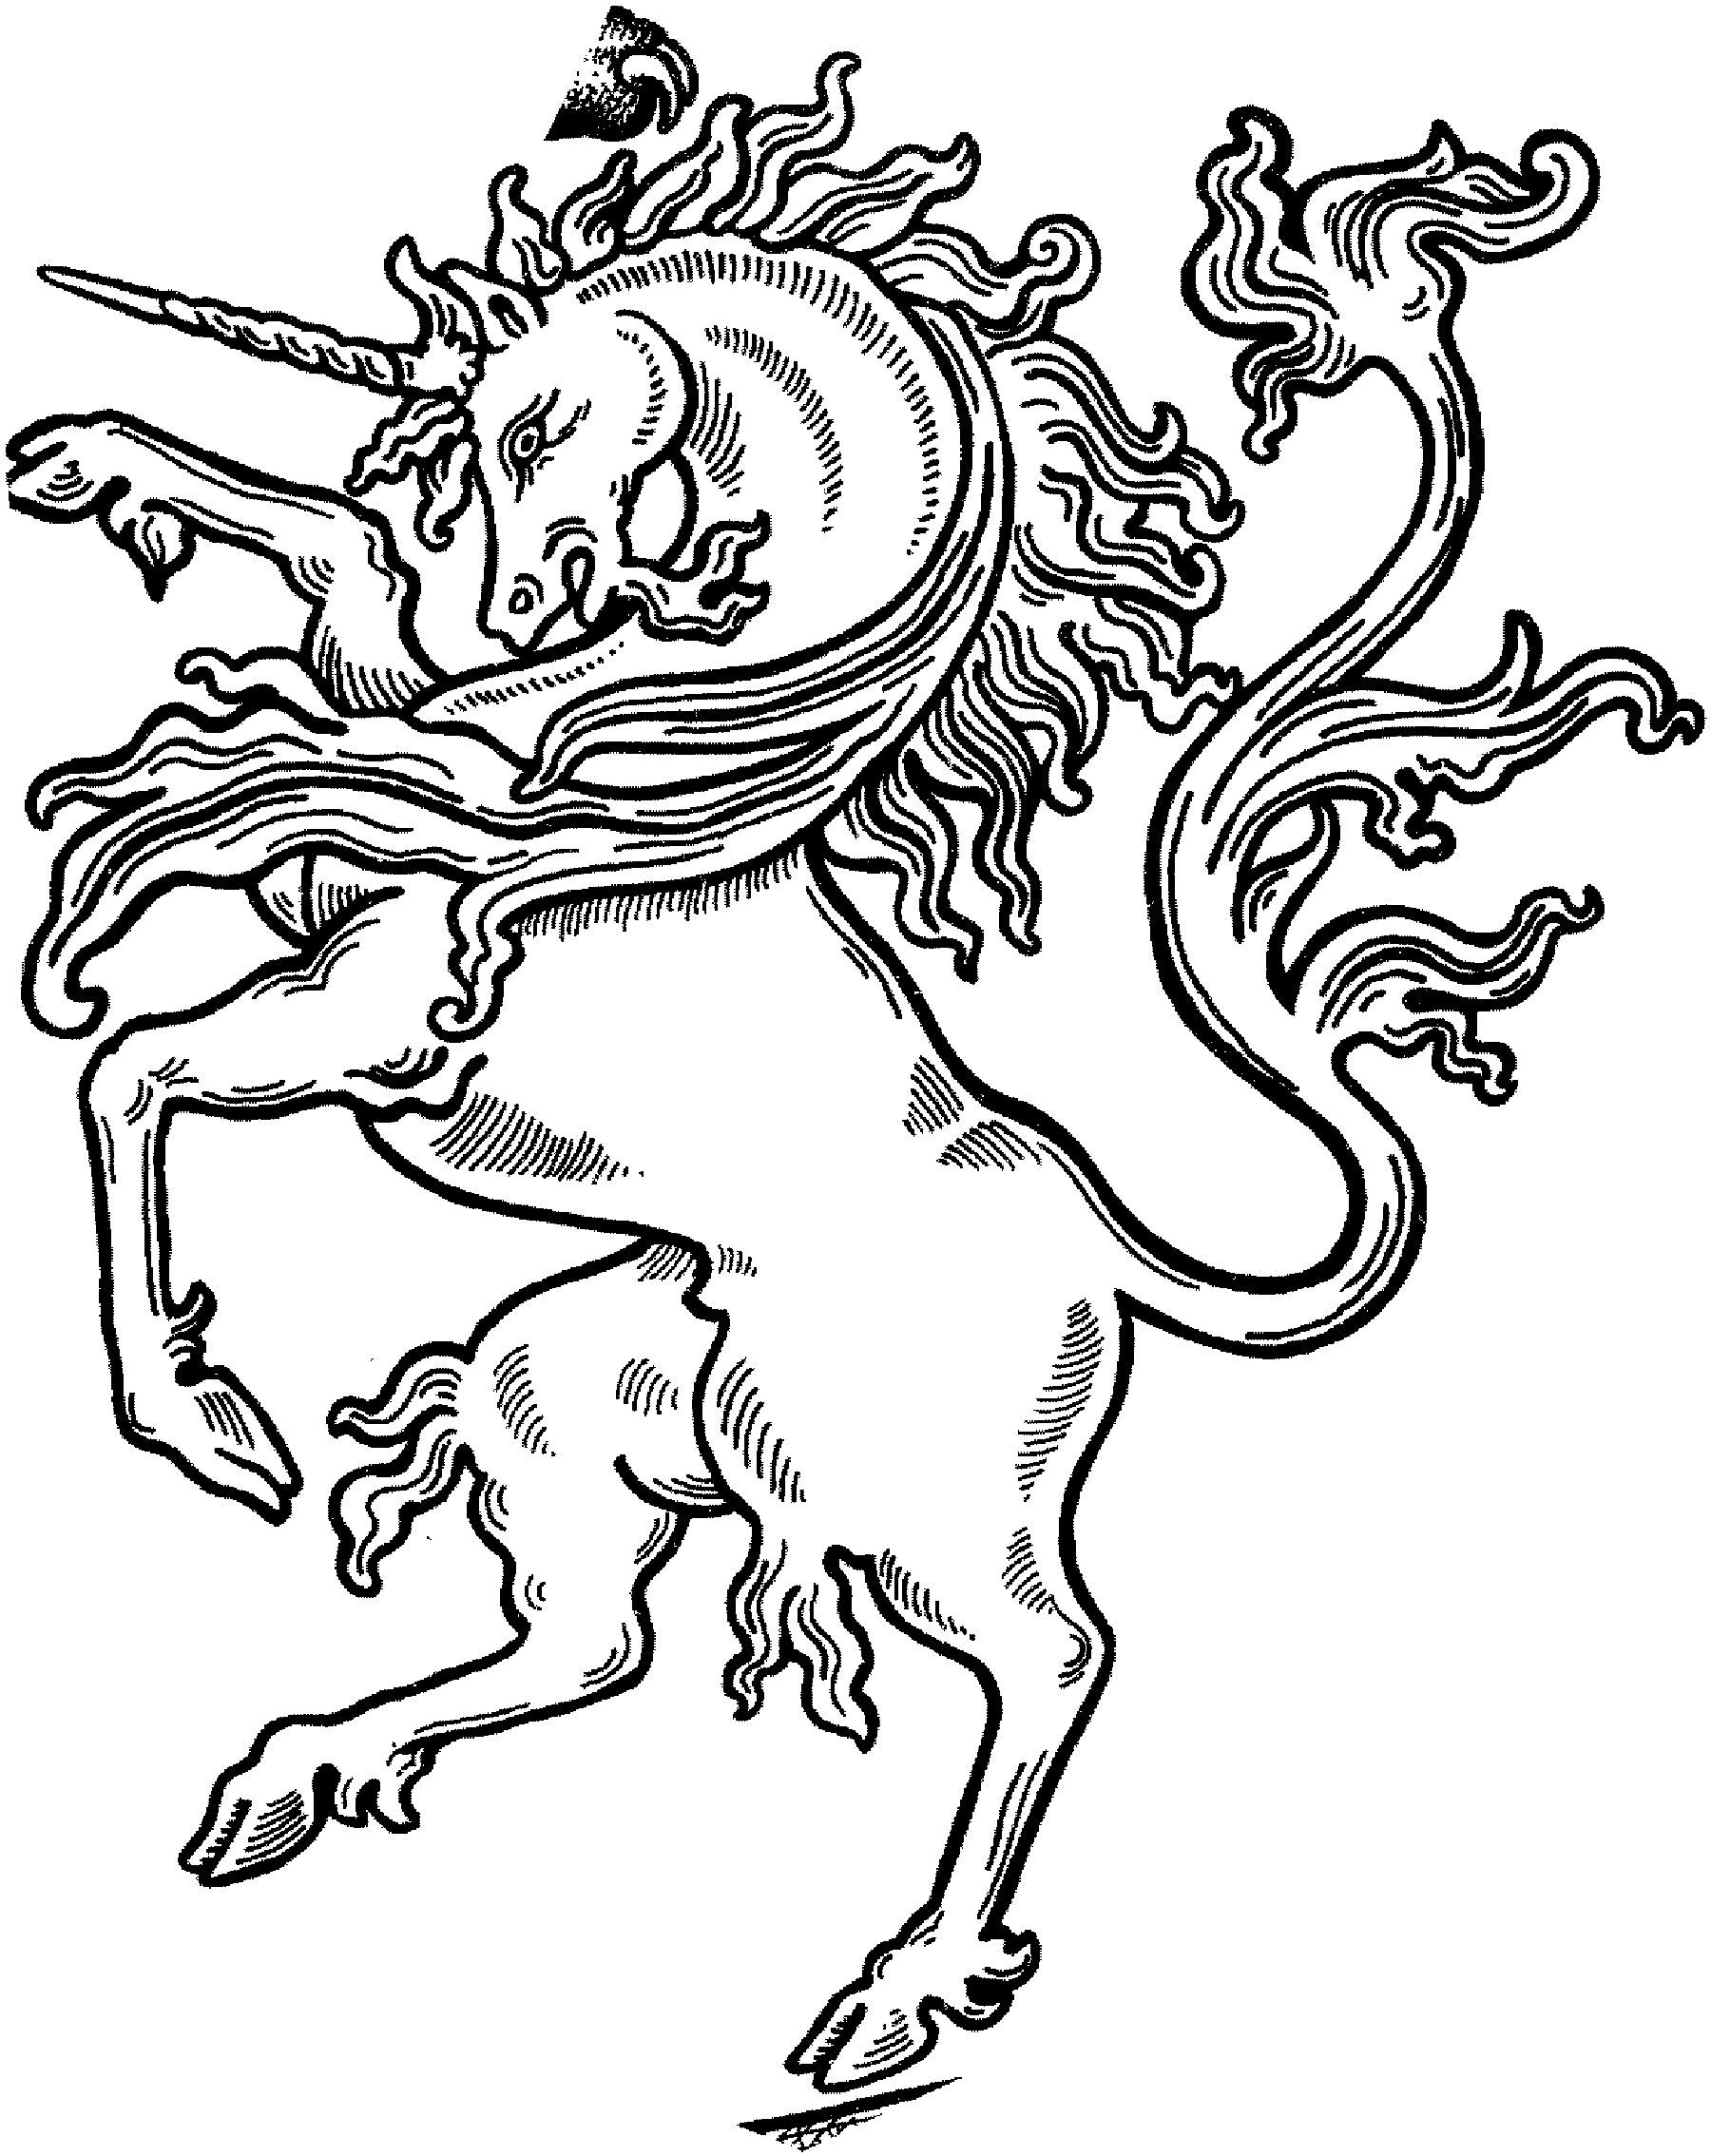 Plicolor Unicorn Coloring Sheet Mythiccreatures Printable